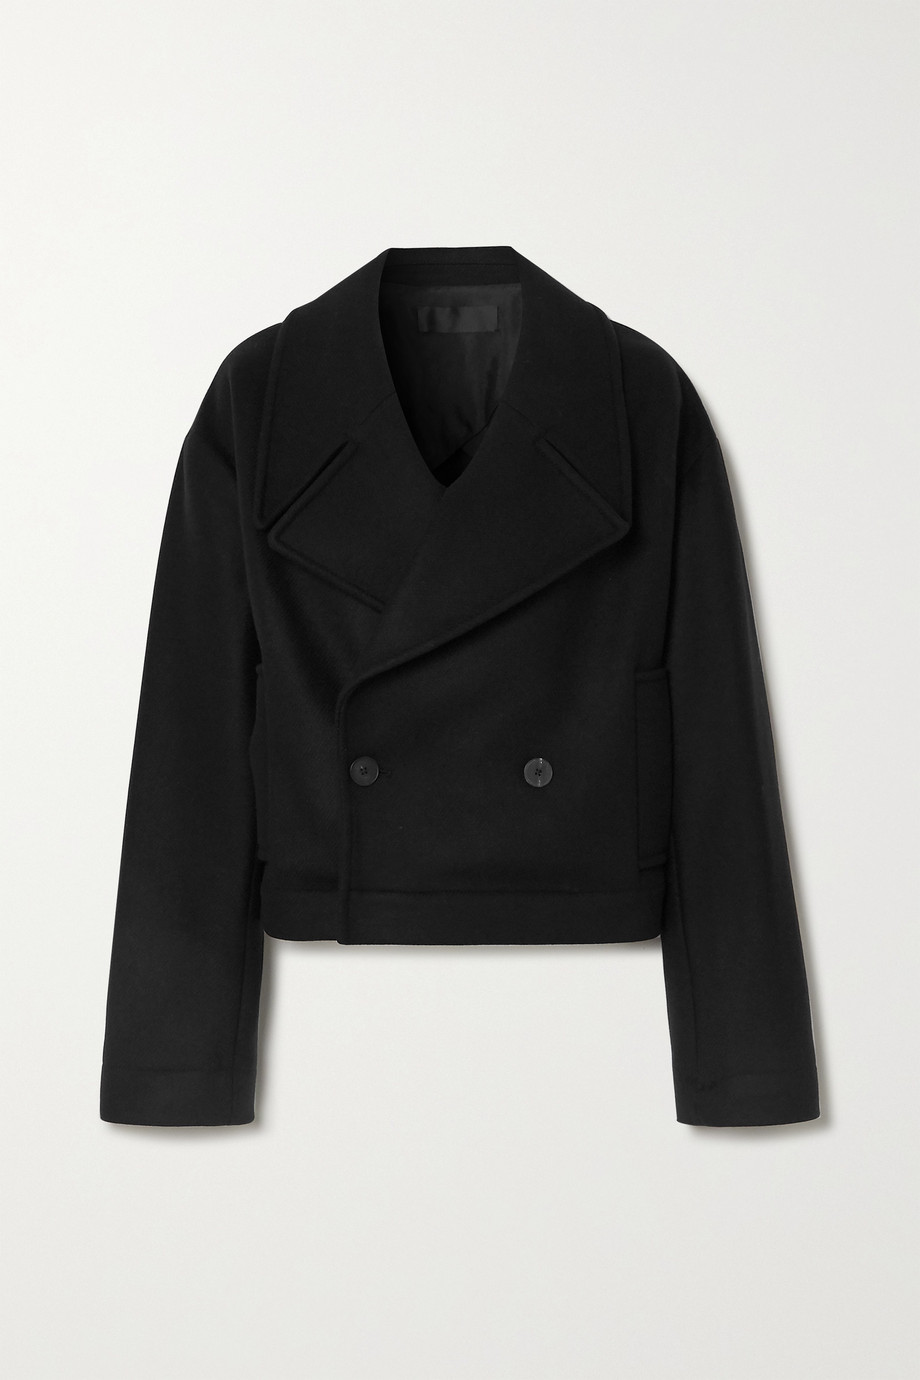 Haider Ackermann Double-breasted wool-blend twill jacket